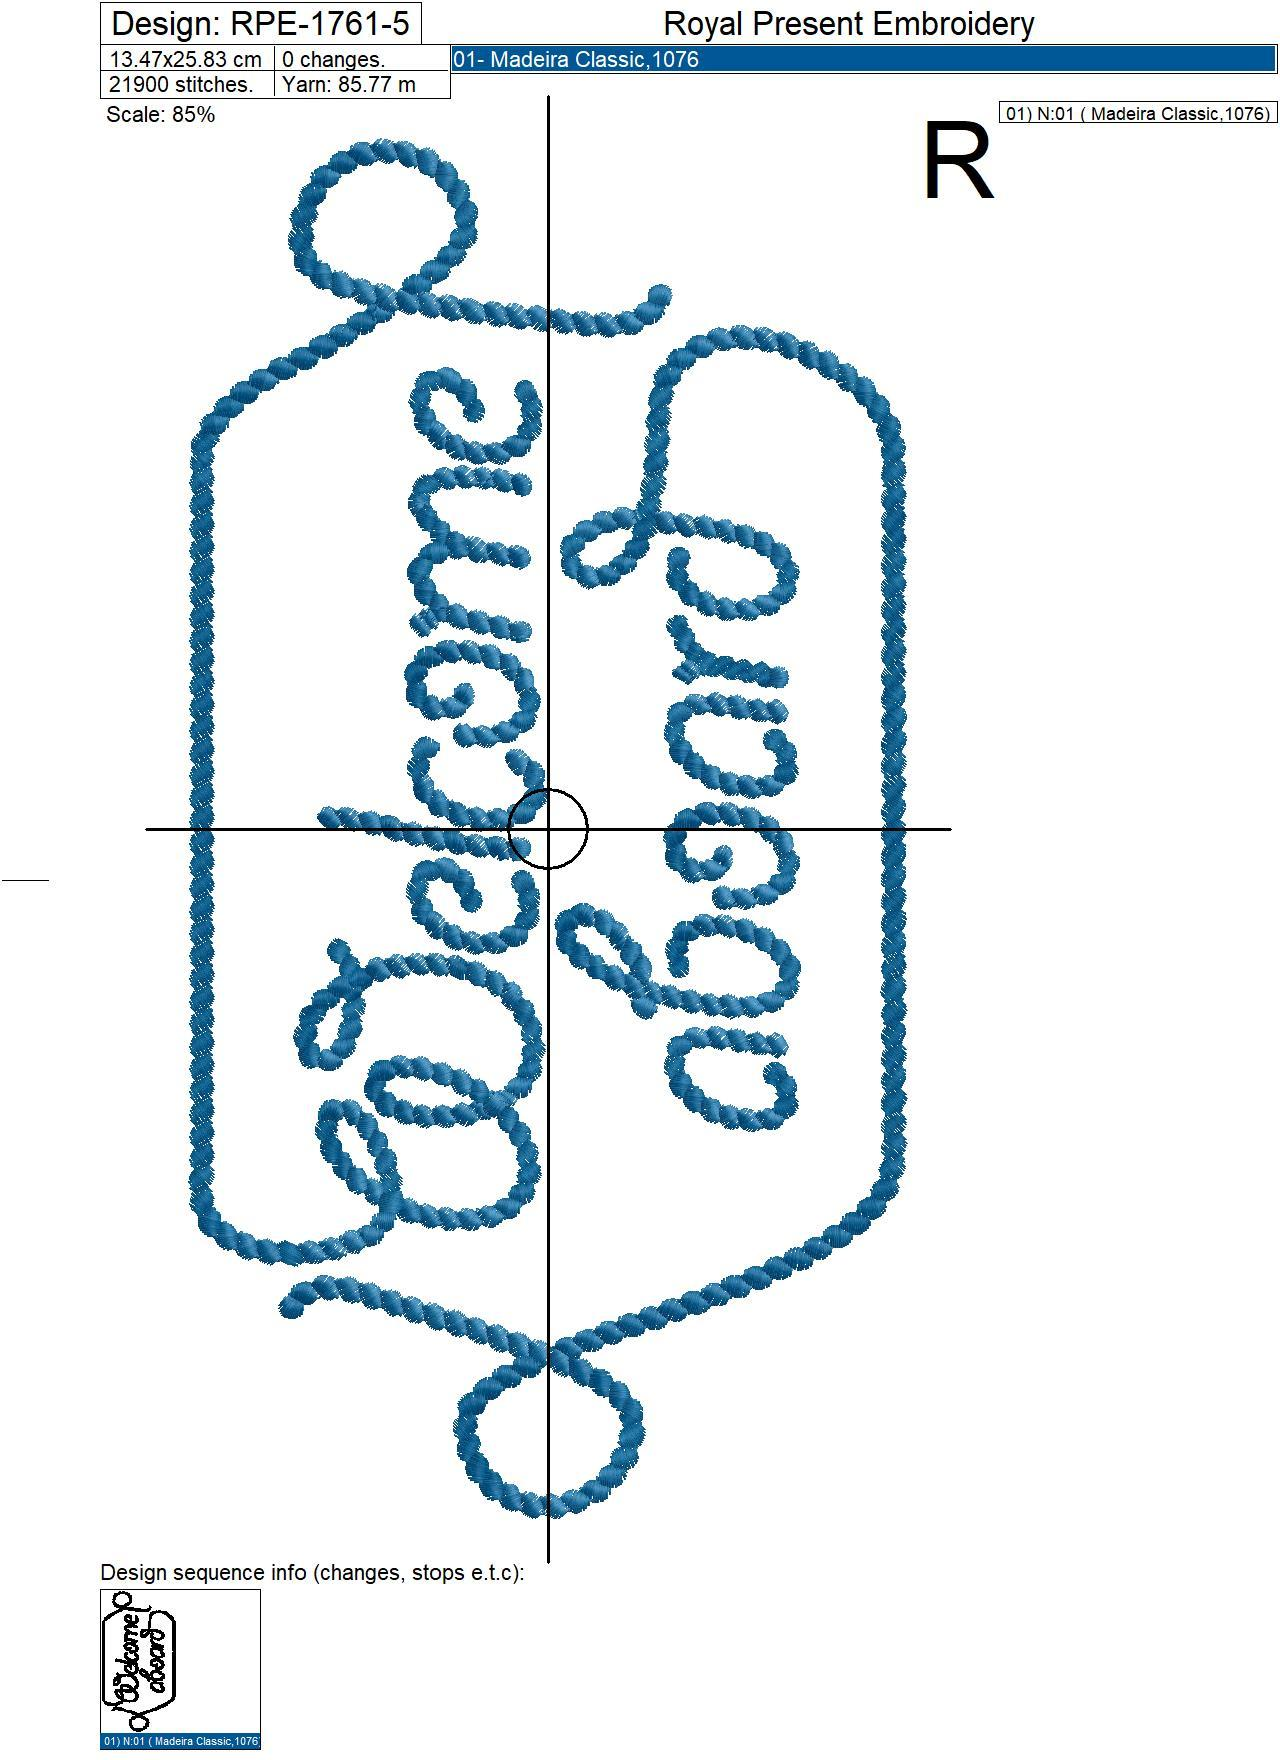 Welcome aboard inscription machine embroidery design - 7 sizes